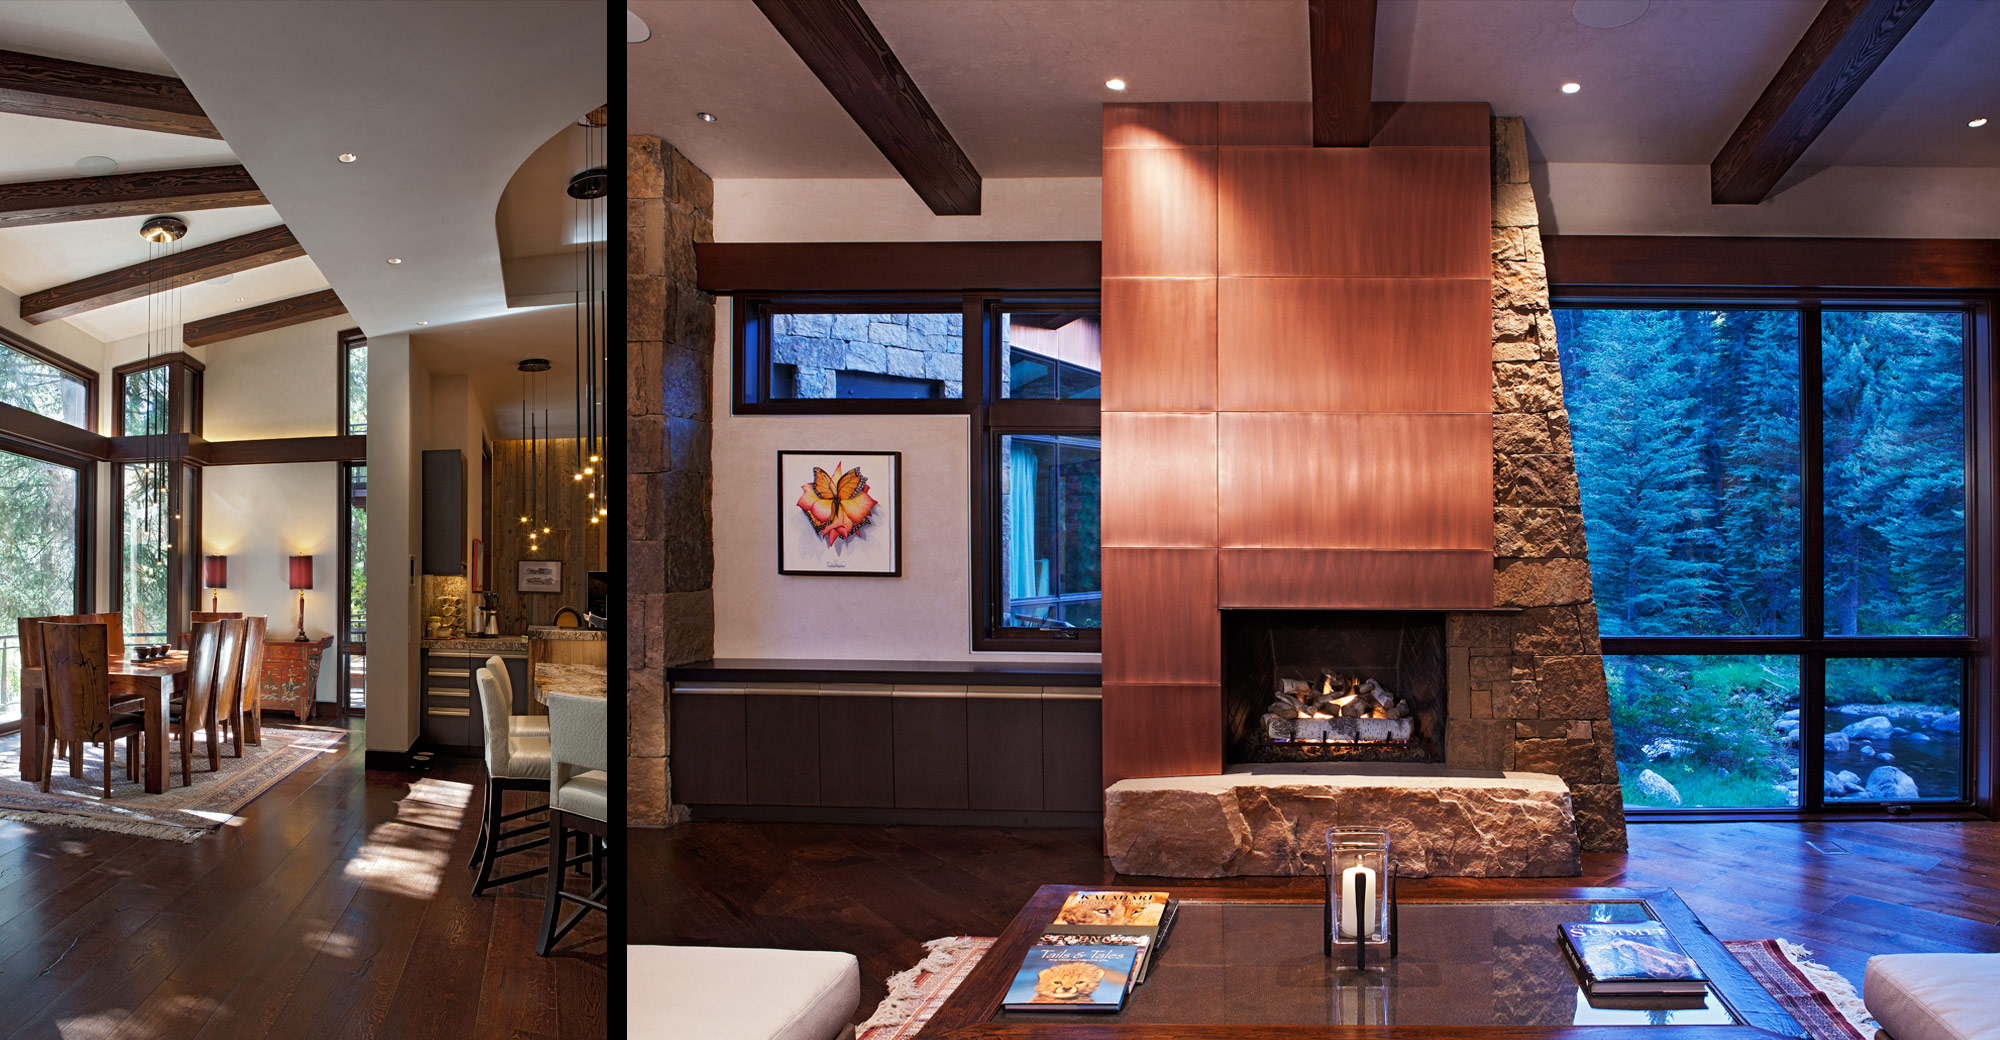 stone-copper-fireplace-dining-wood-beams